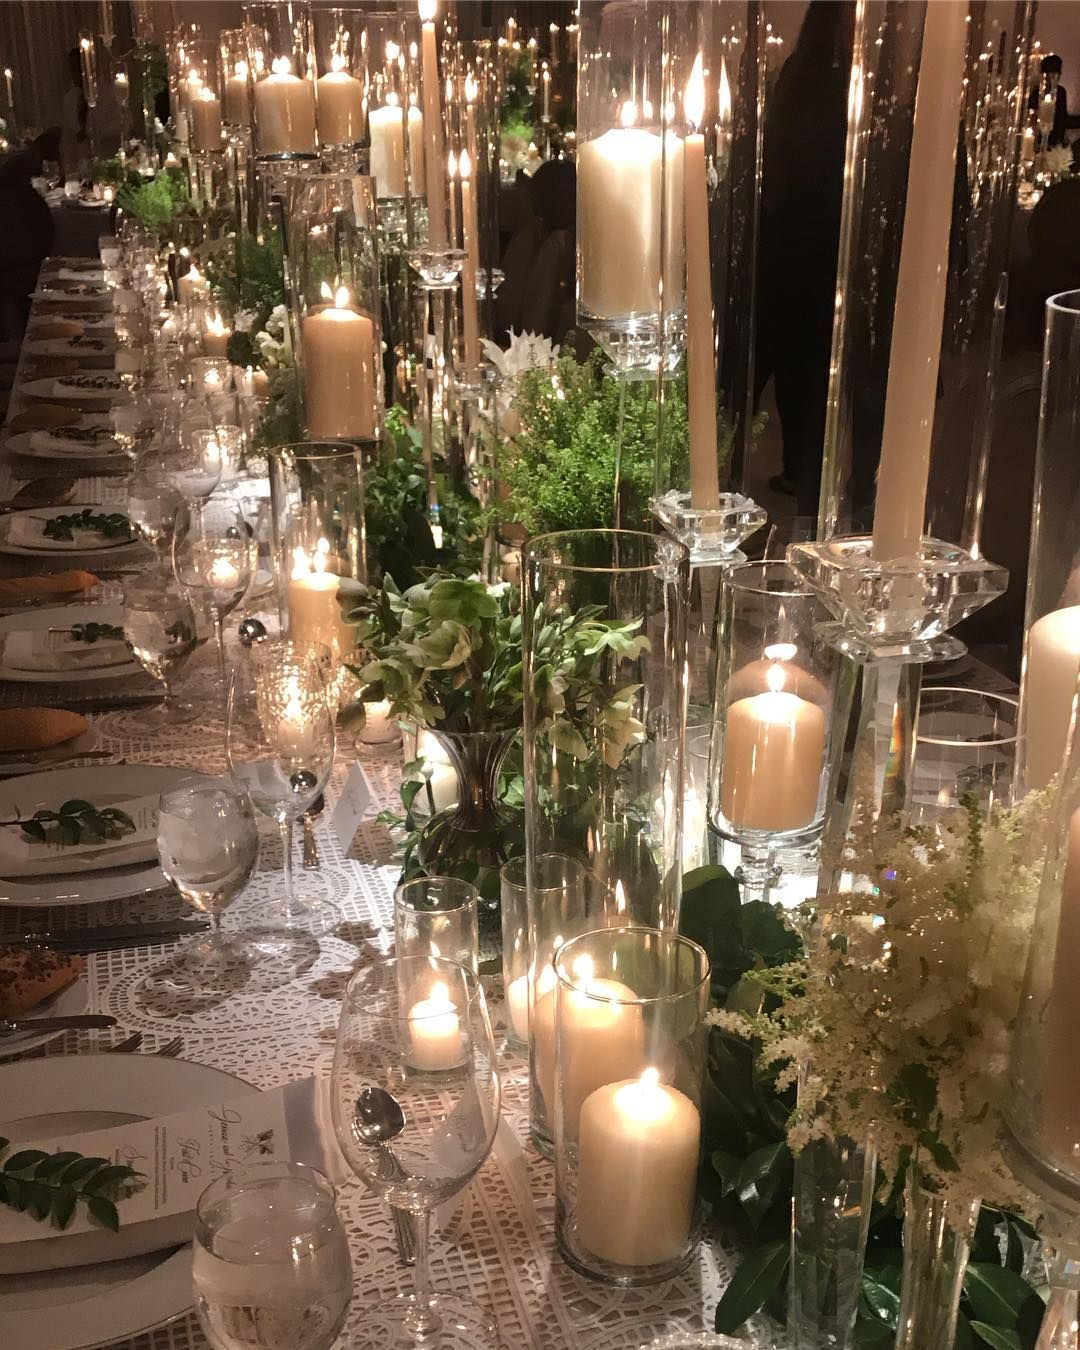 Mindy Weiss On Instagram Dinner Table Filled With Candles And Greens A Touch Of Floral Flower Centerpieces Wedding Wedding Table Settings Candle Lit Wedding